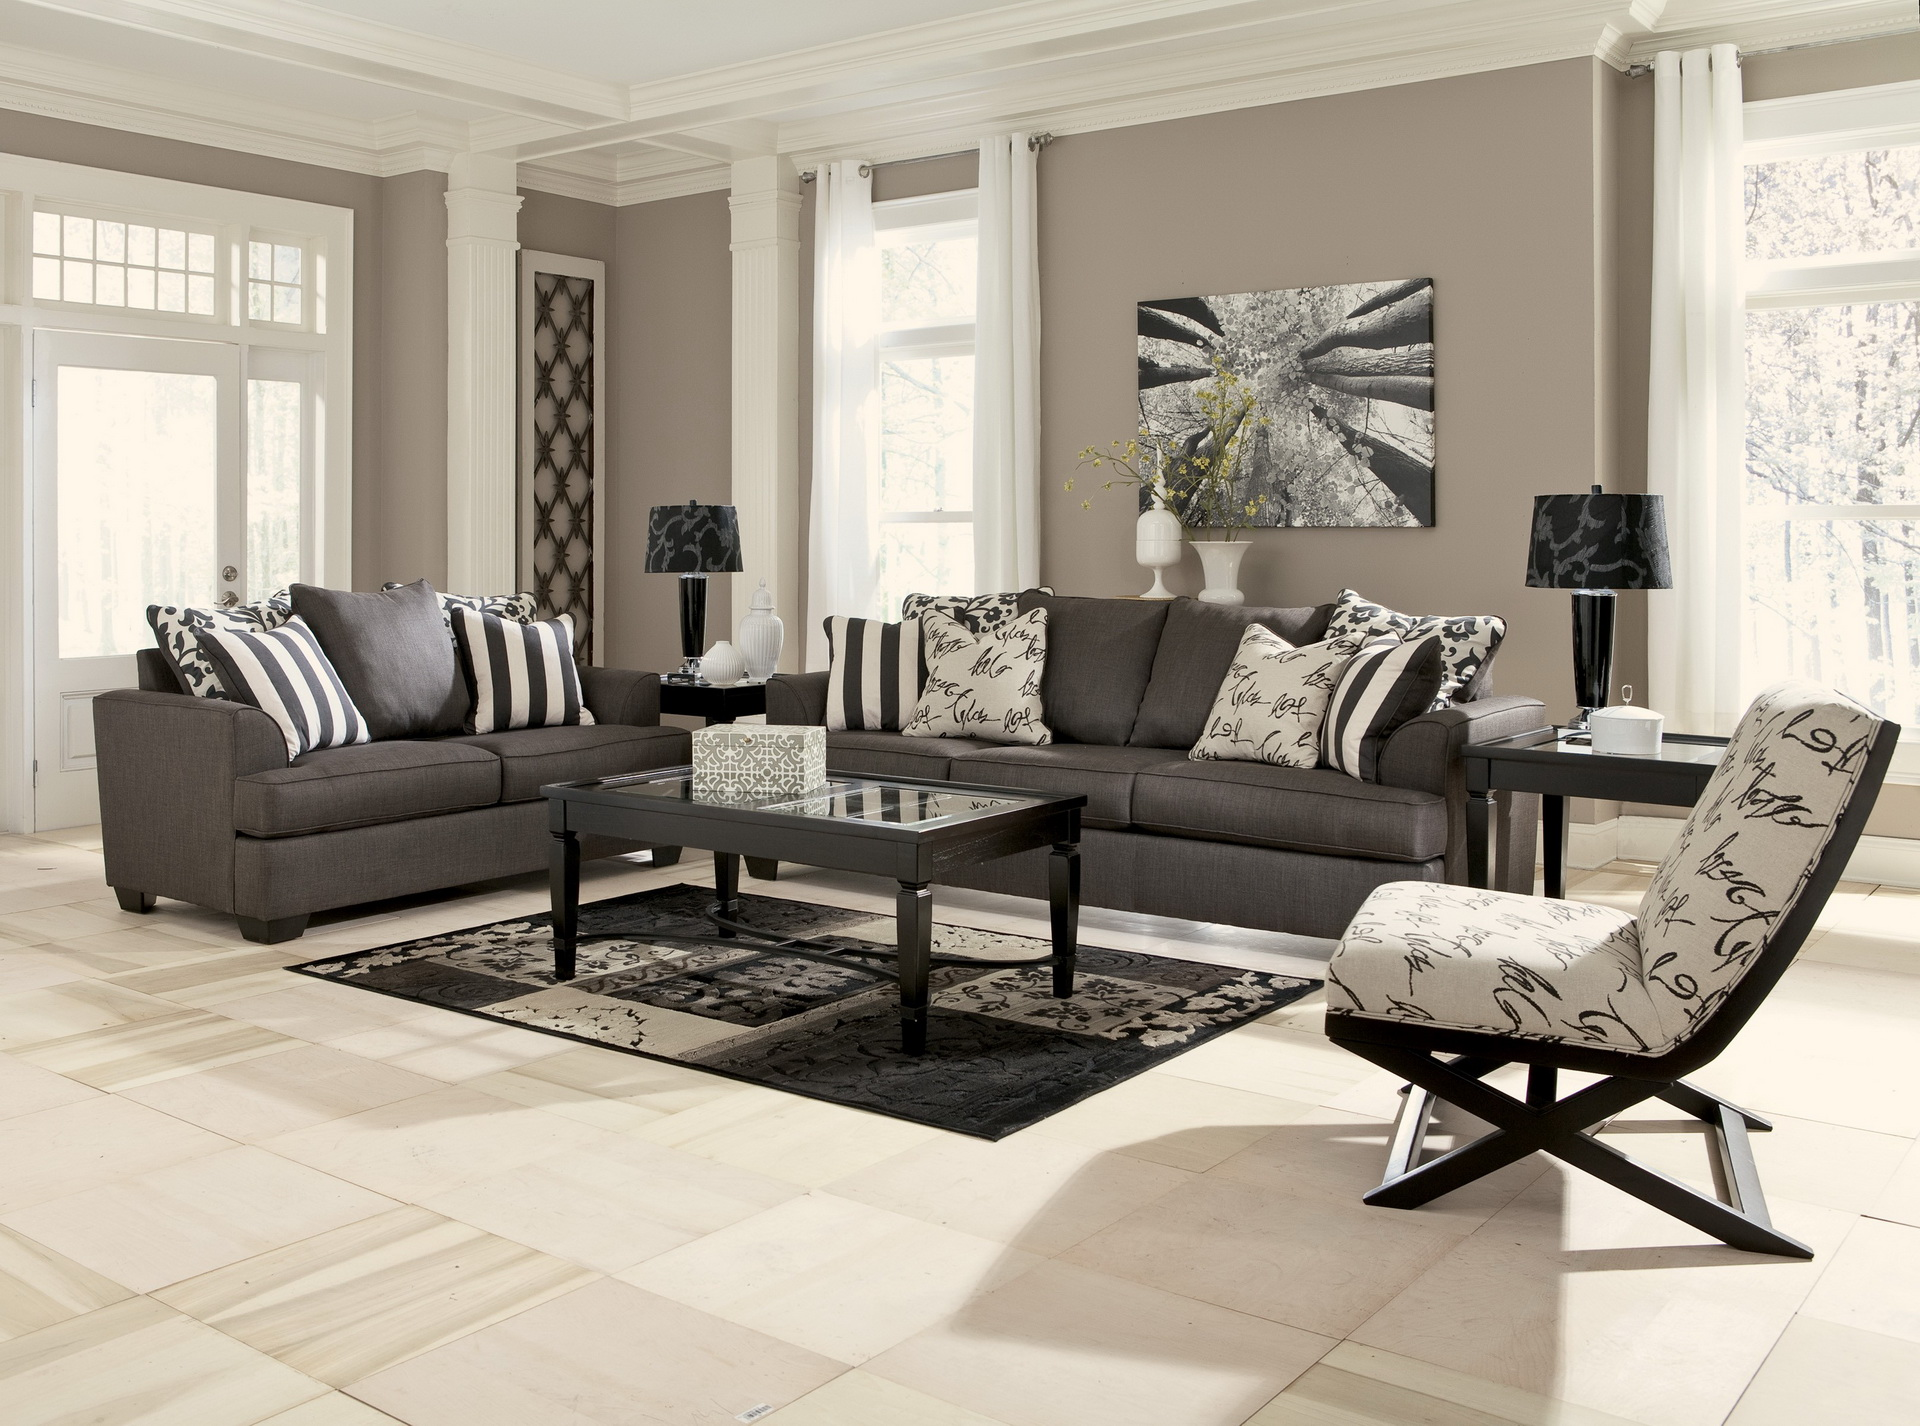 chairs for livingroom accent chairs for living room 23 reasons to buy hawk haven 2295